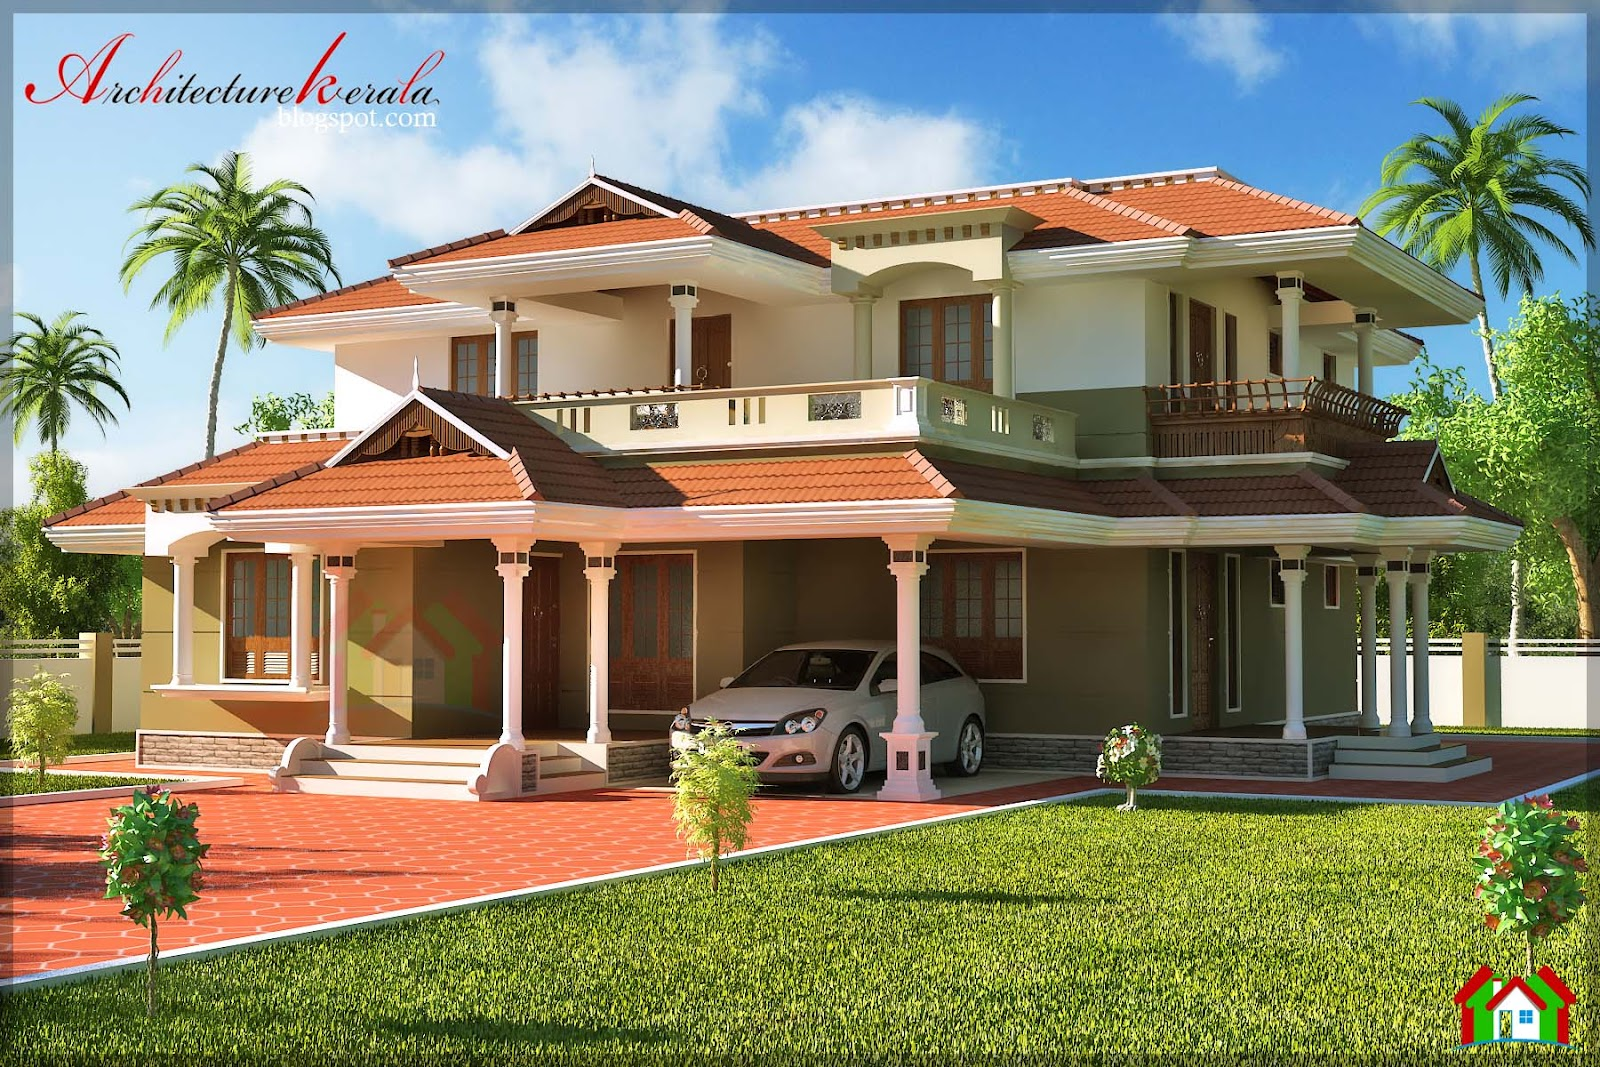 bed room traditional style house design architecture kerala. Black Bedroom Furniture Sets. Home Design Ideas